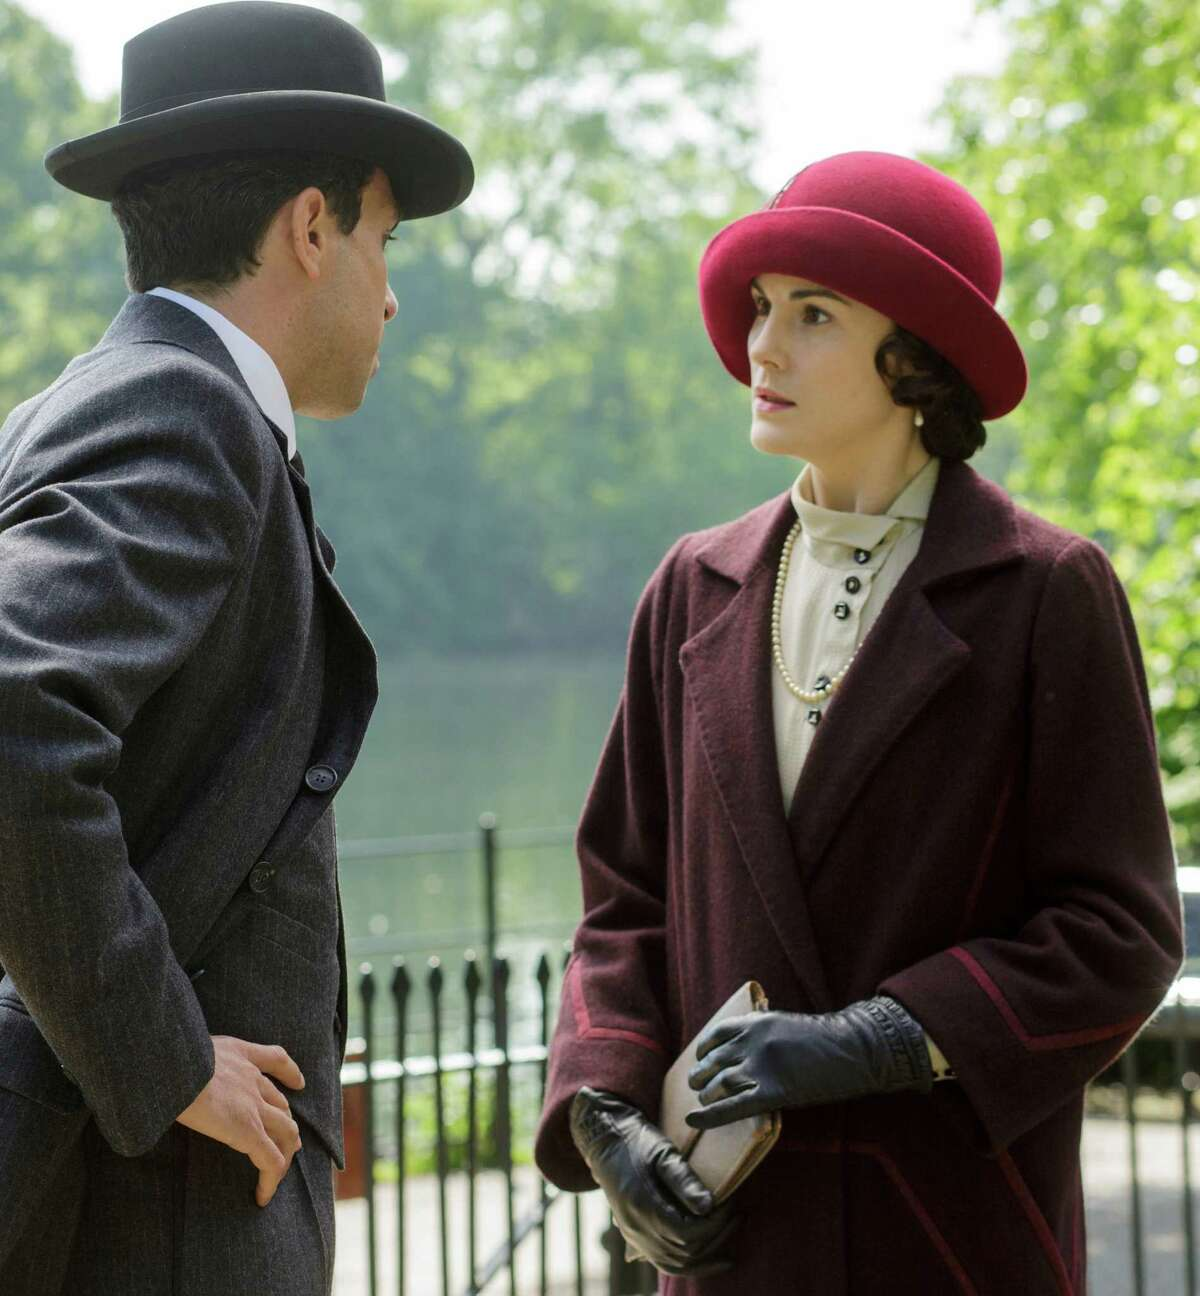 Lady Mary, are you sure you know what you are doing? Just a question.